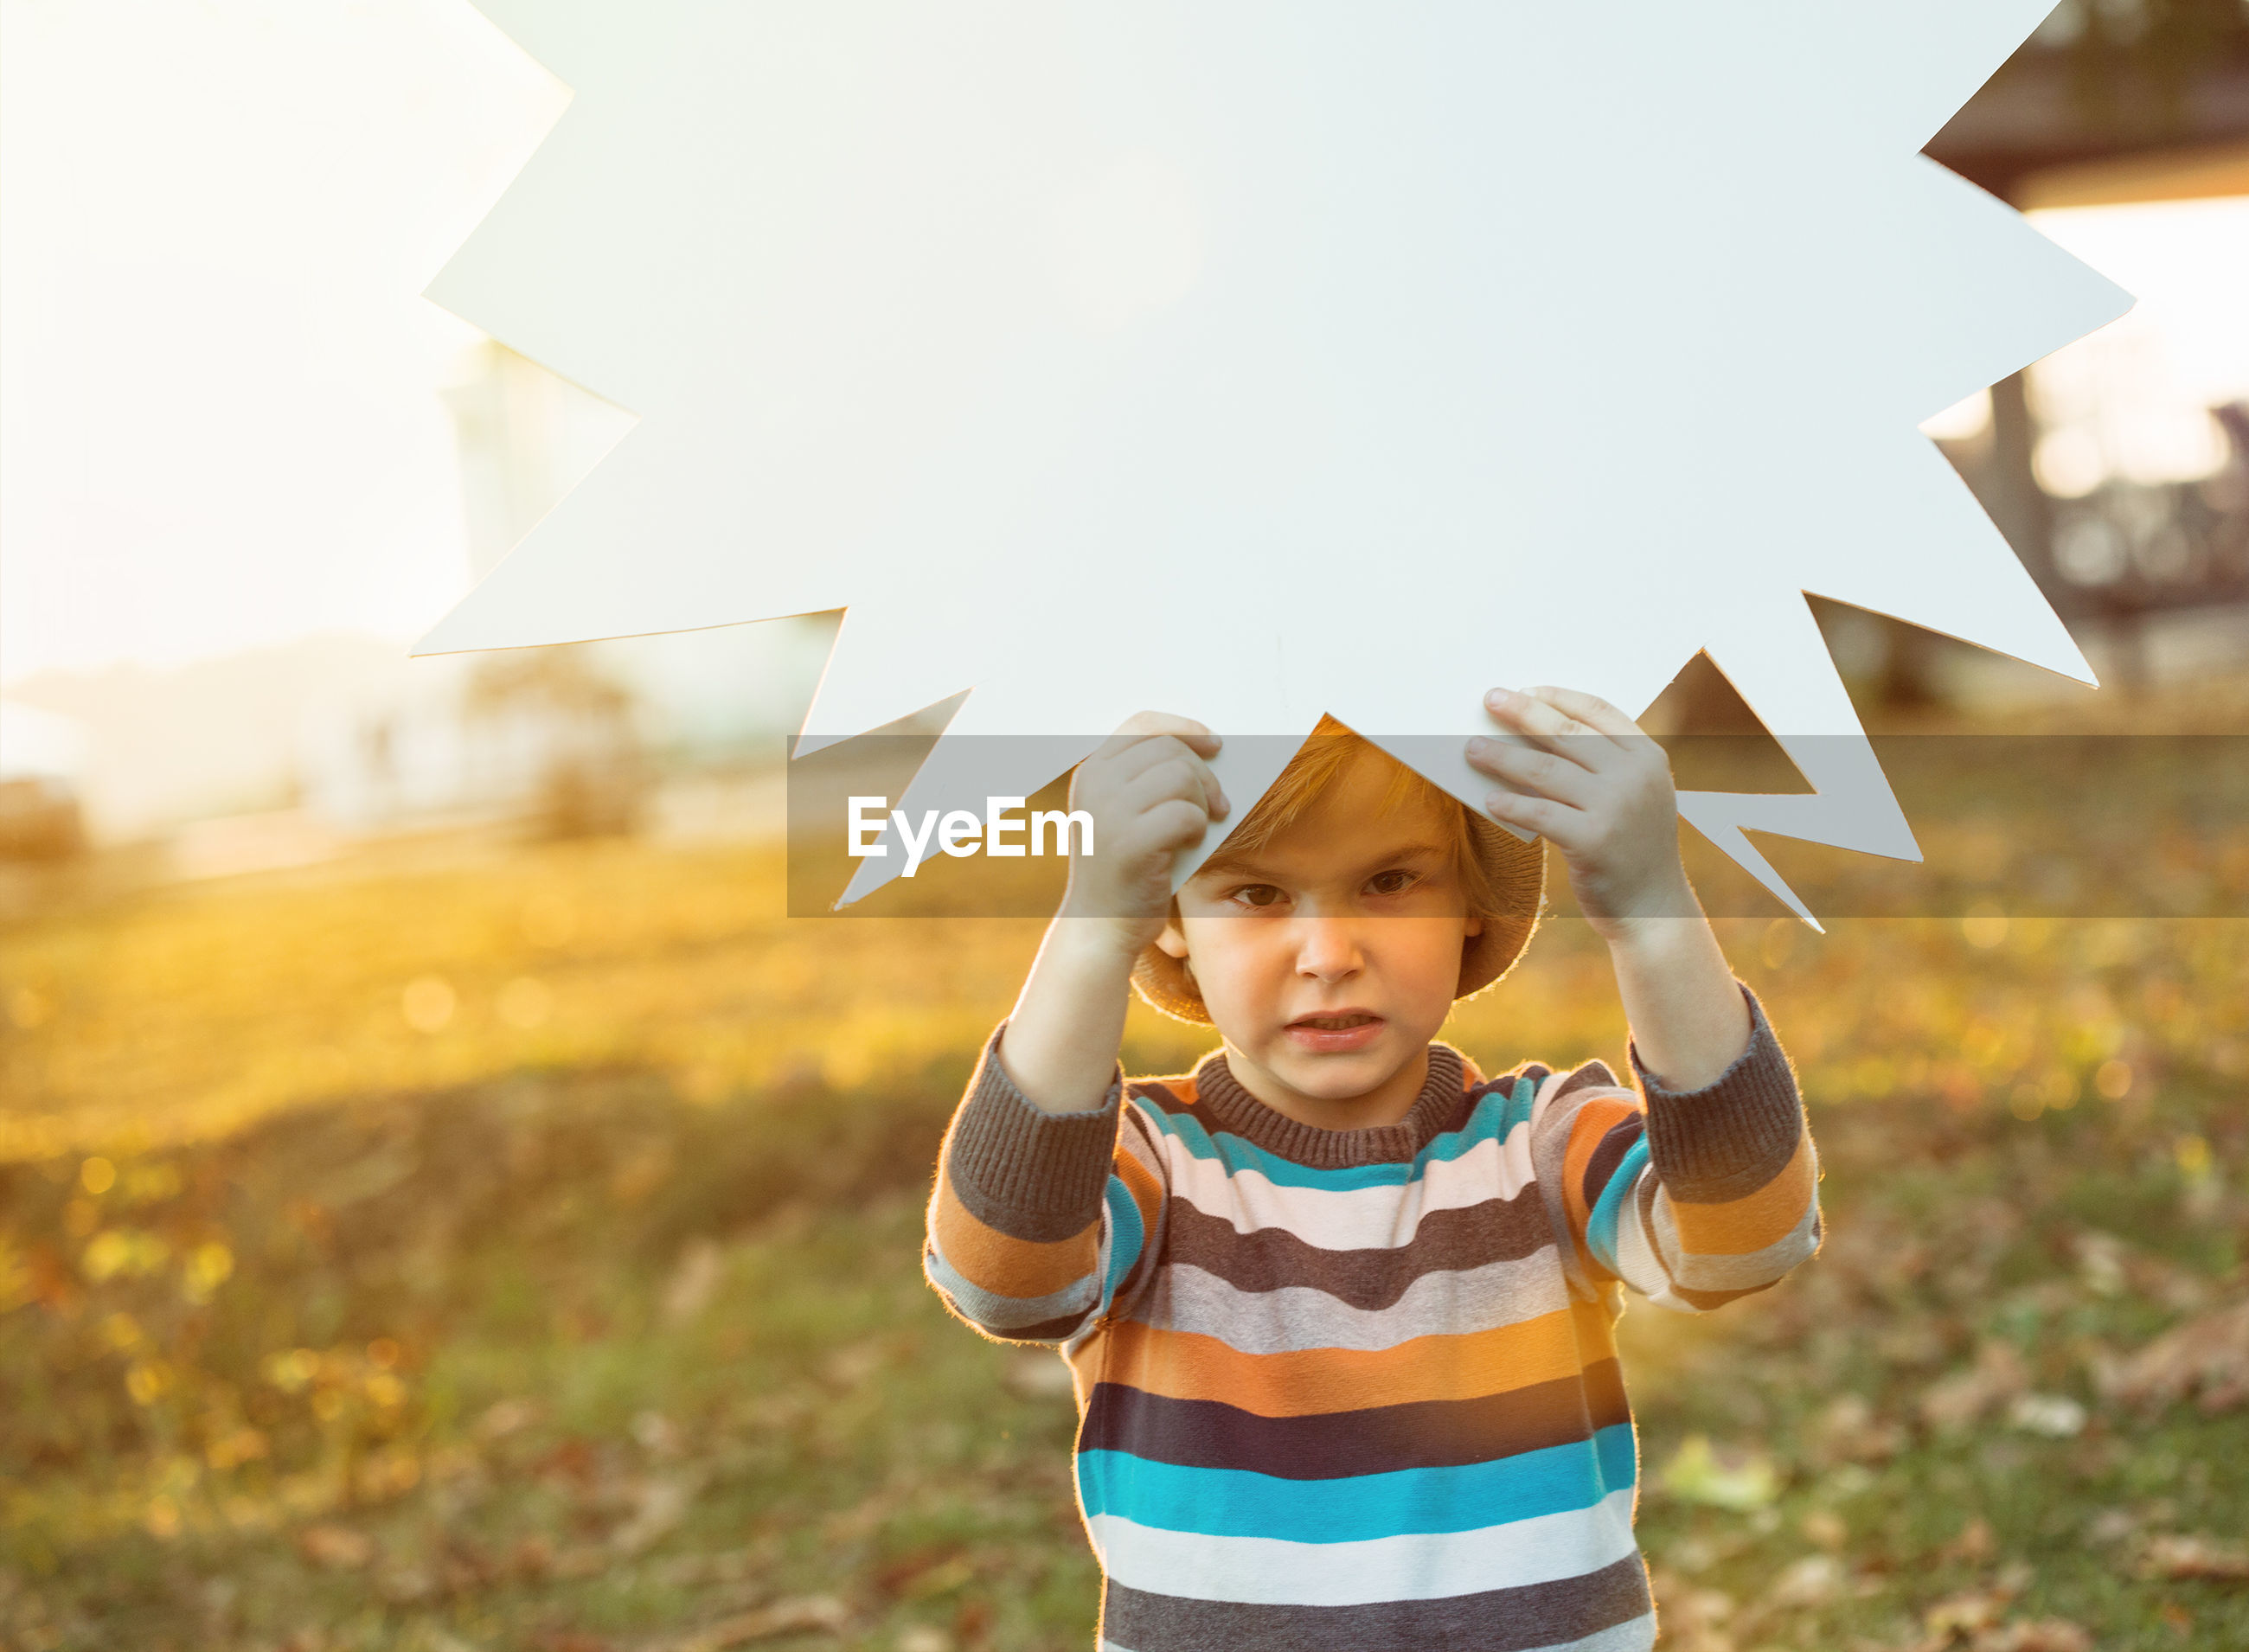 Portrait of boy holding speech bubble on field during sunset